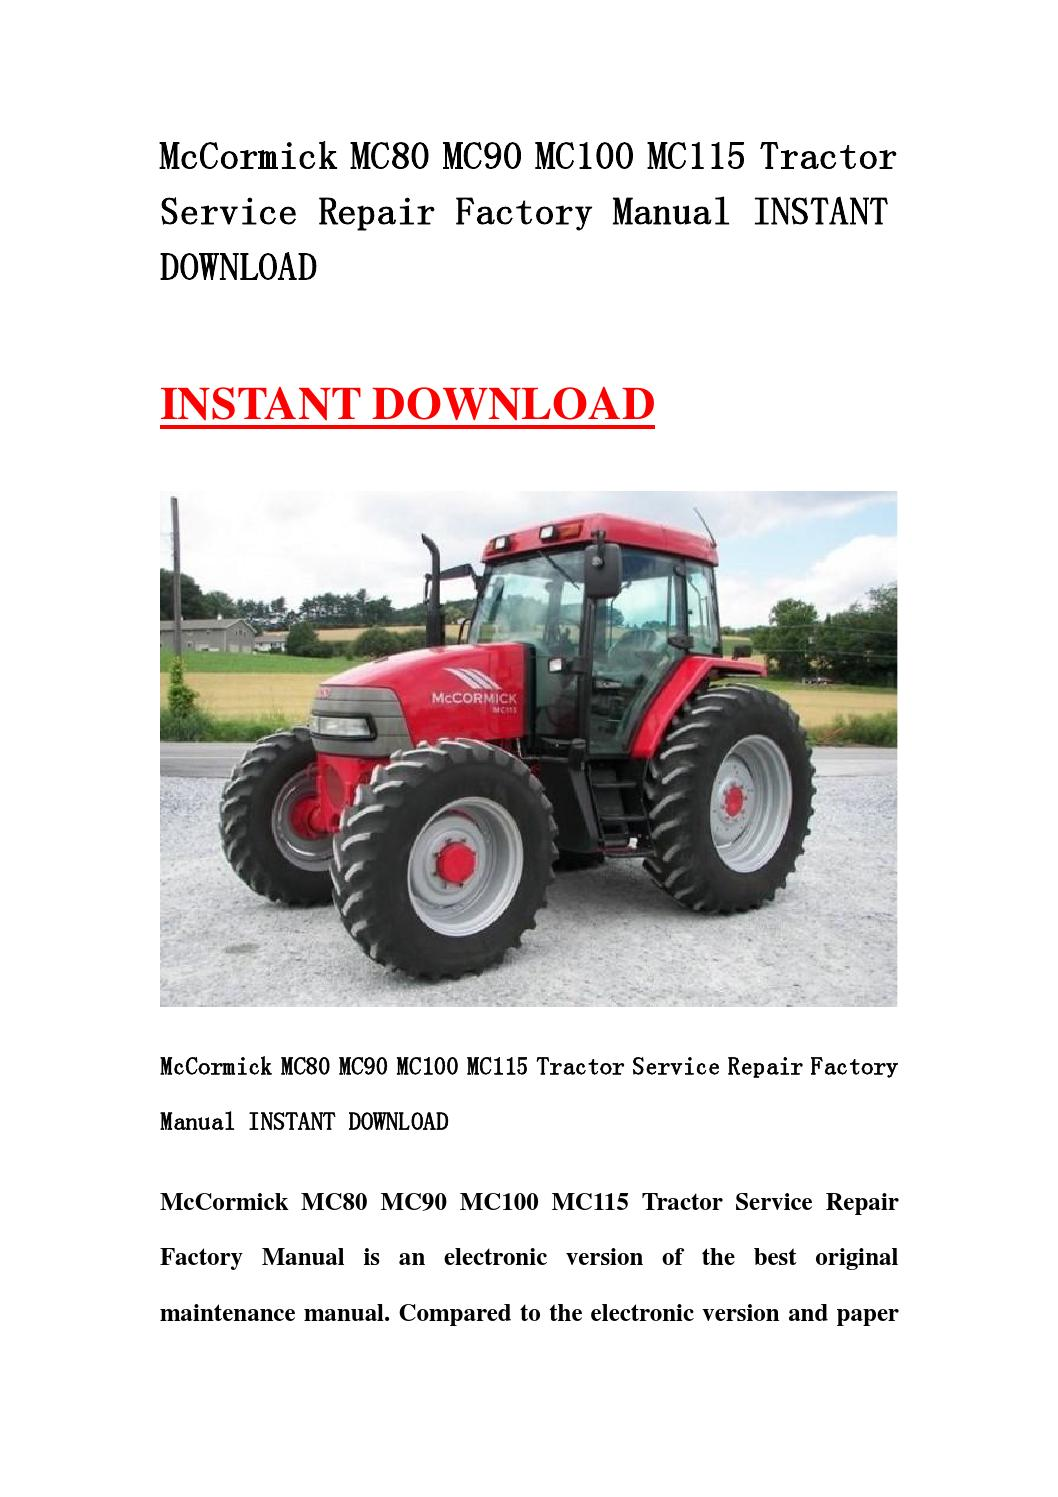 Mccormick mc80 mc90 mc100 mc115 tractor service repair factory manual  instant download by DDservicemanual - issuu